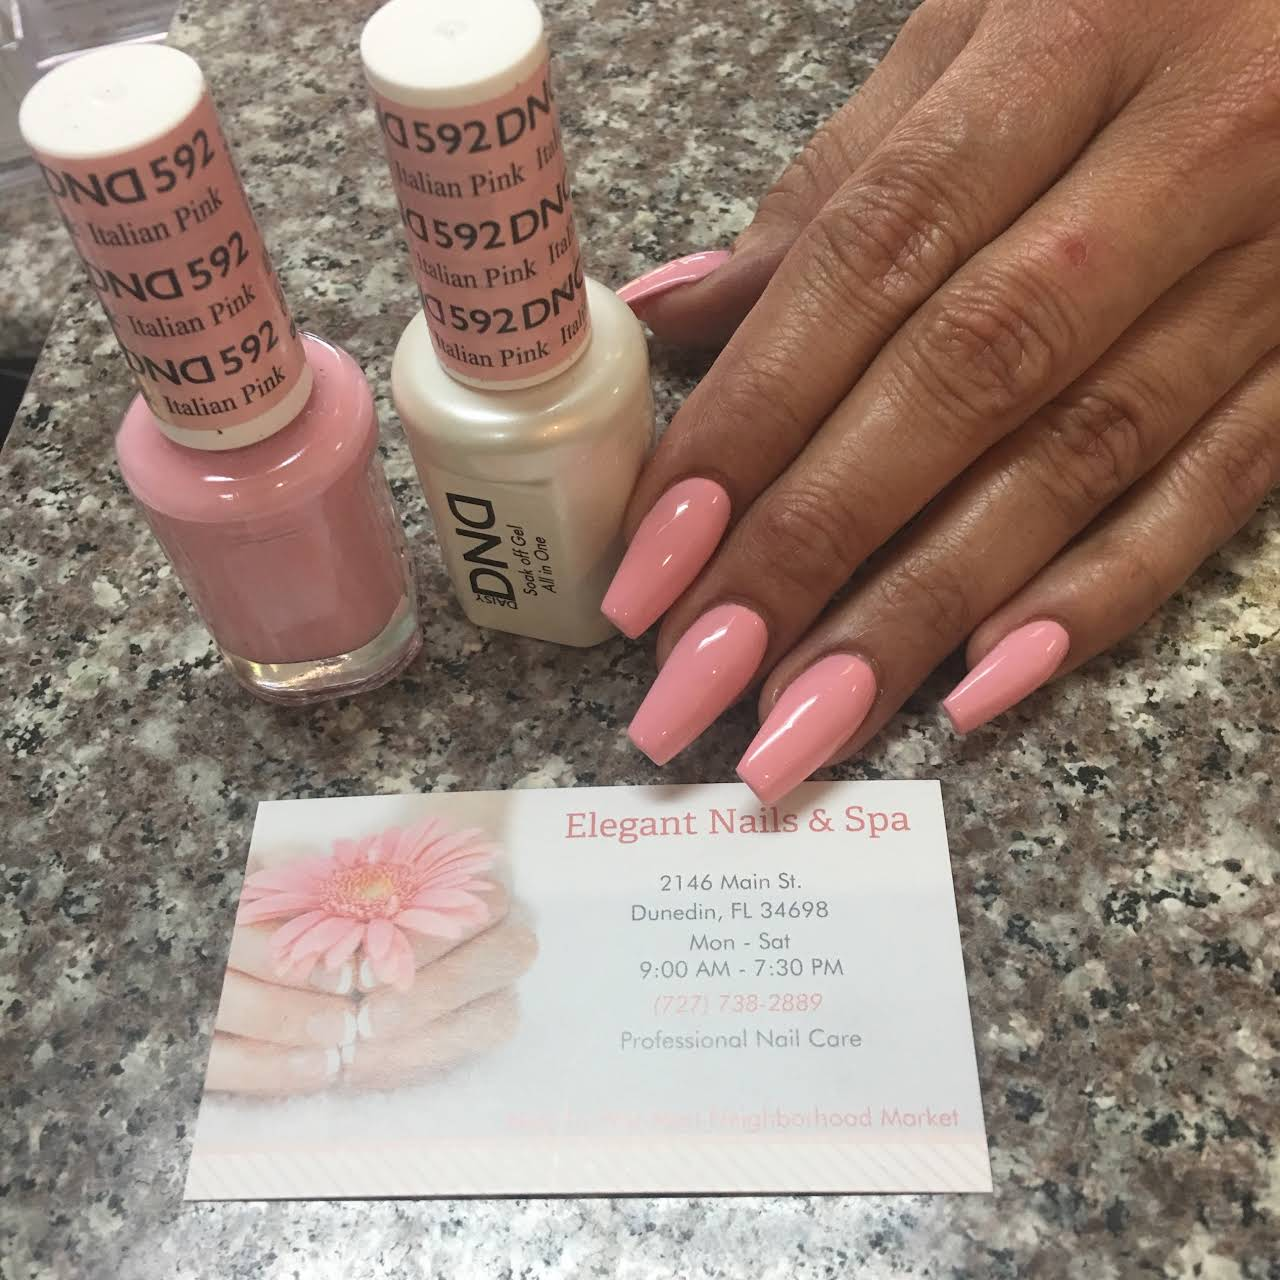 Elegant Nails & Spa - Nail Salon in Dunedin & Clearwater